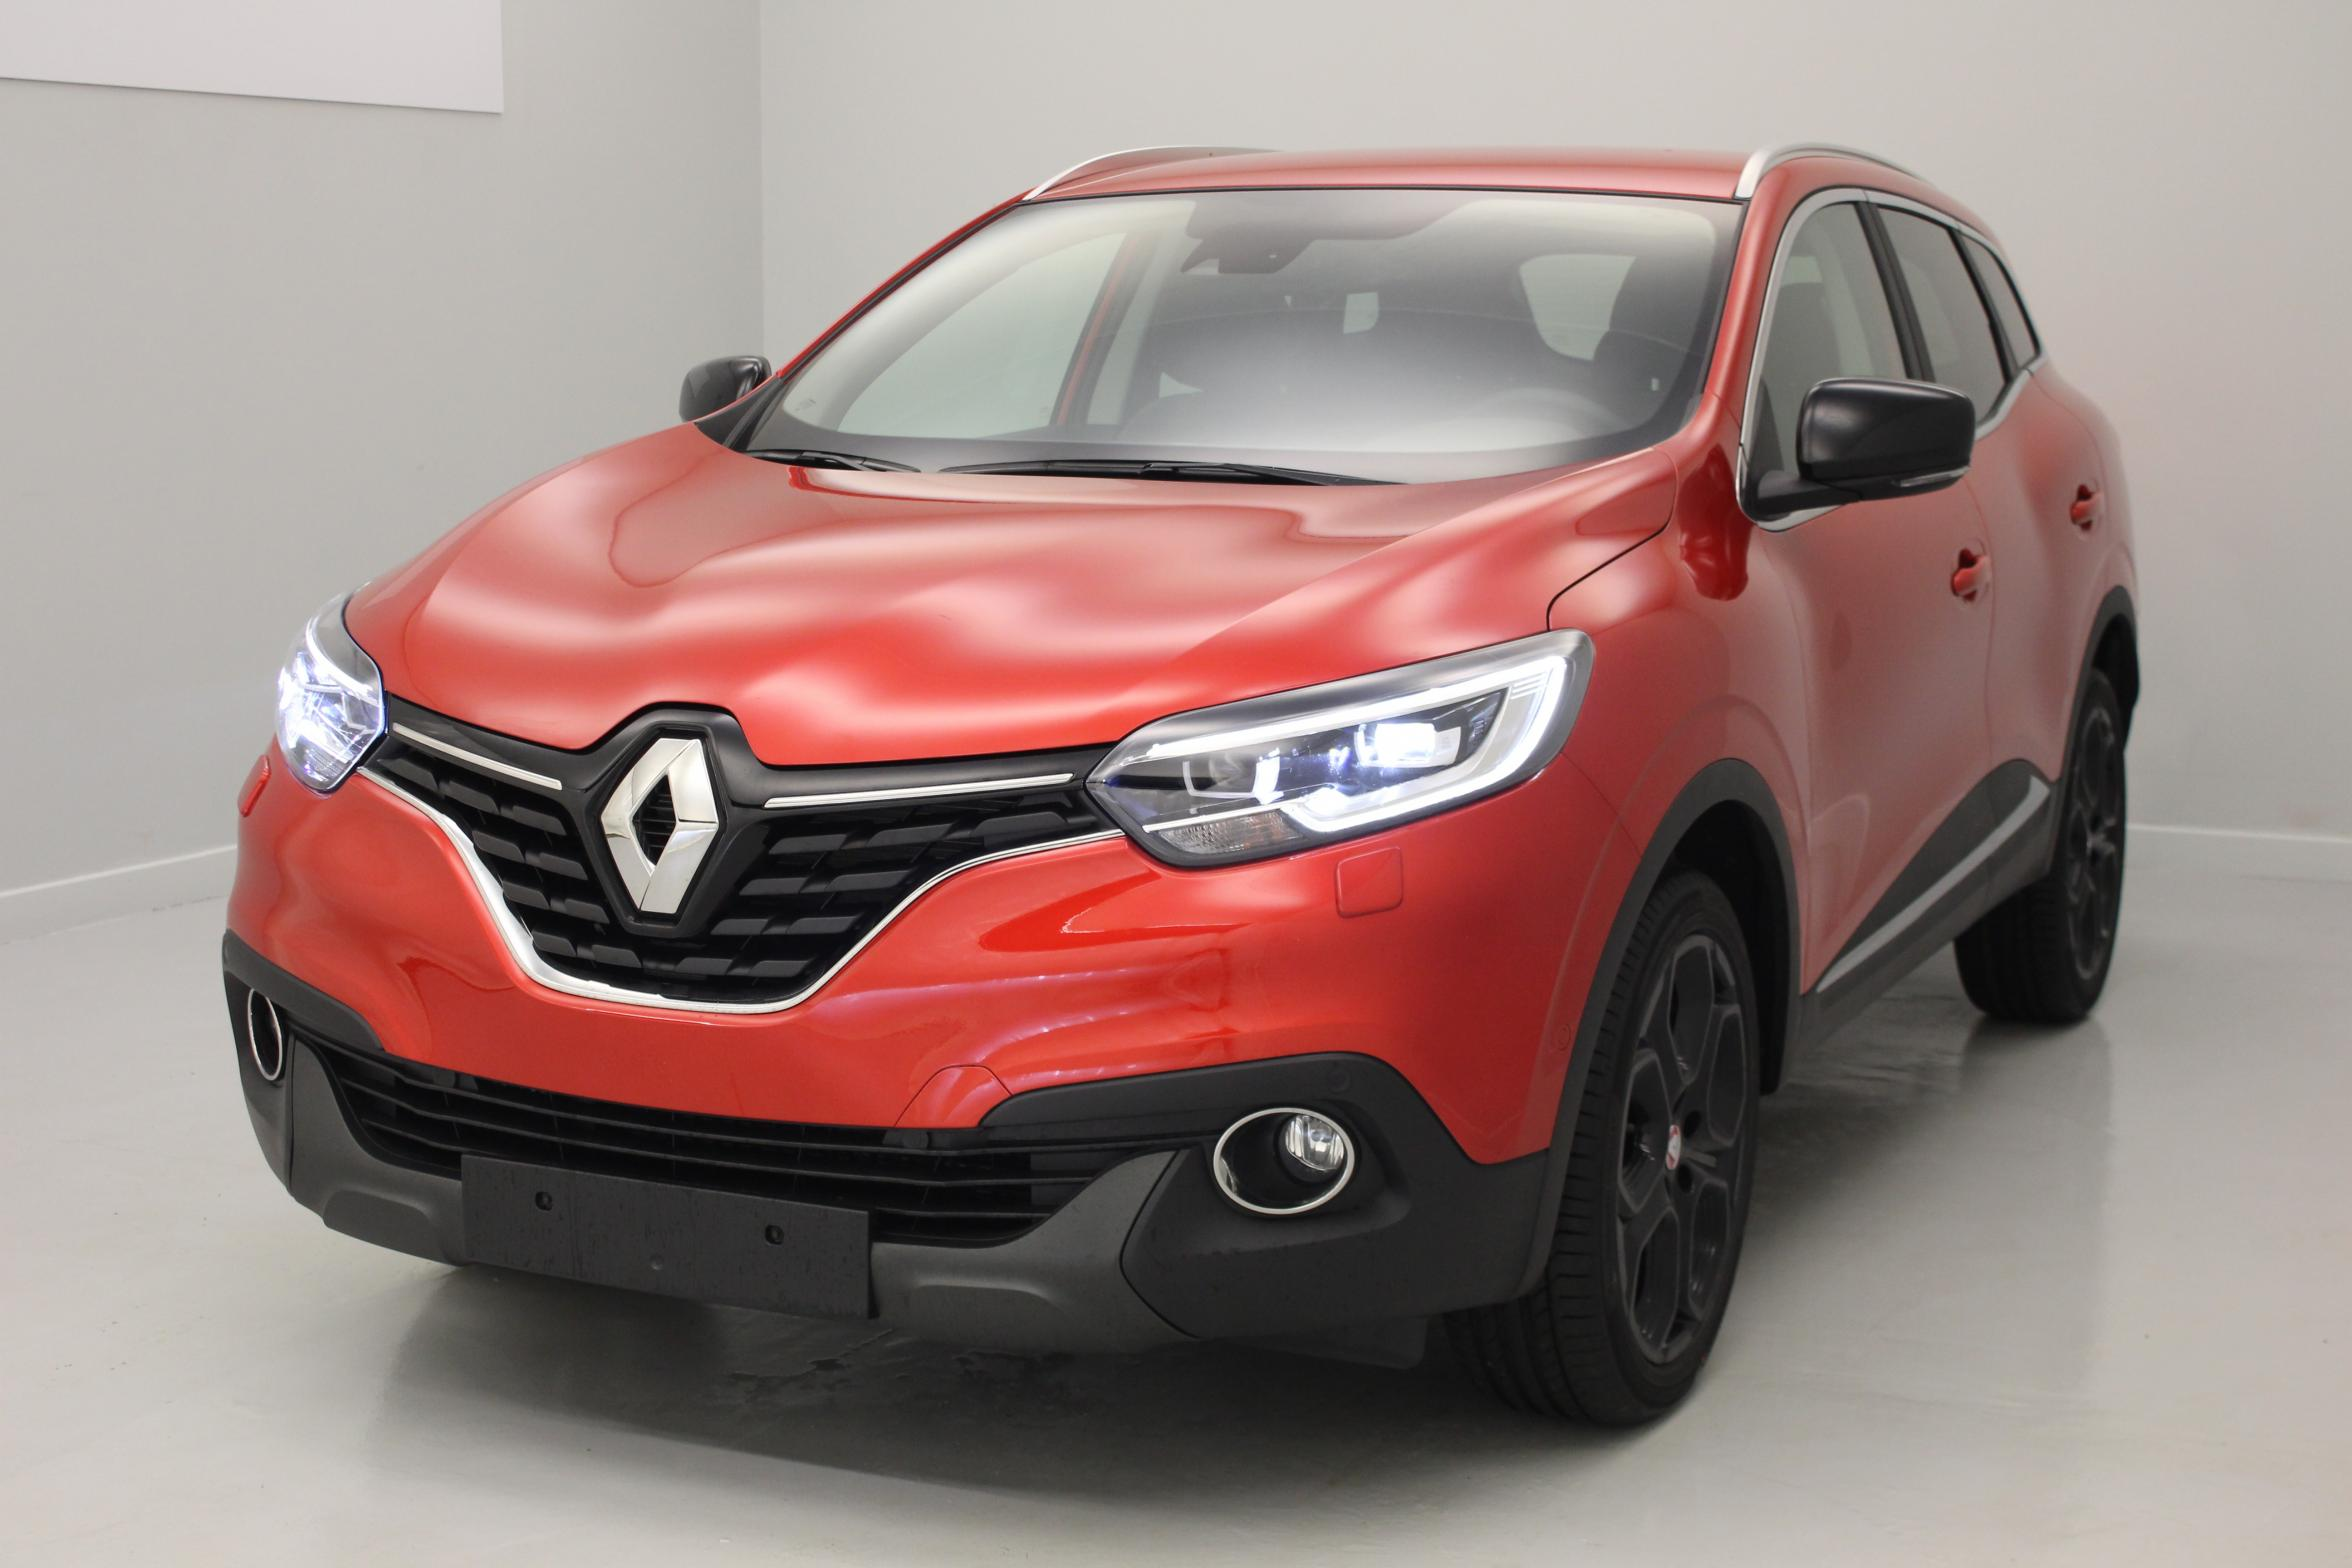 renault kadjar tce 130 energy intens edc rouge flamme bose sound system pack cuir pare. Black Bedroom Furniture Sets. Home Design Ideas